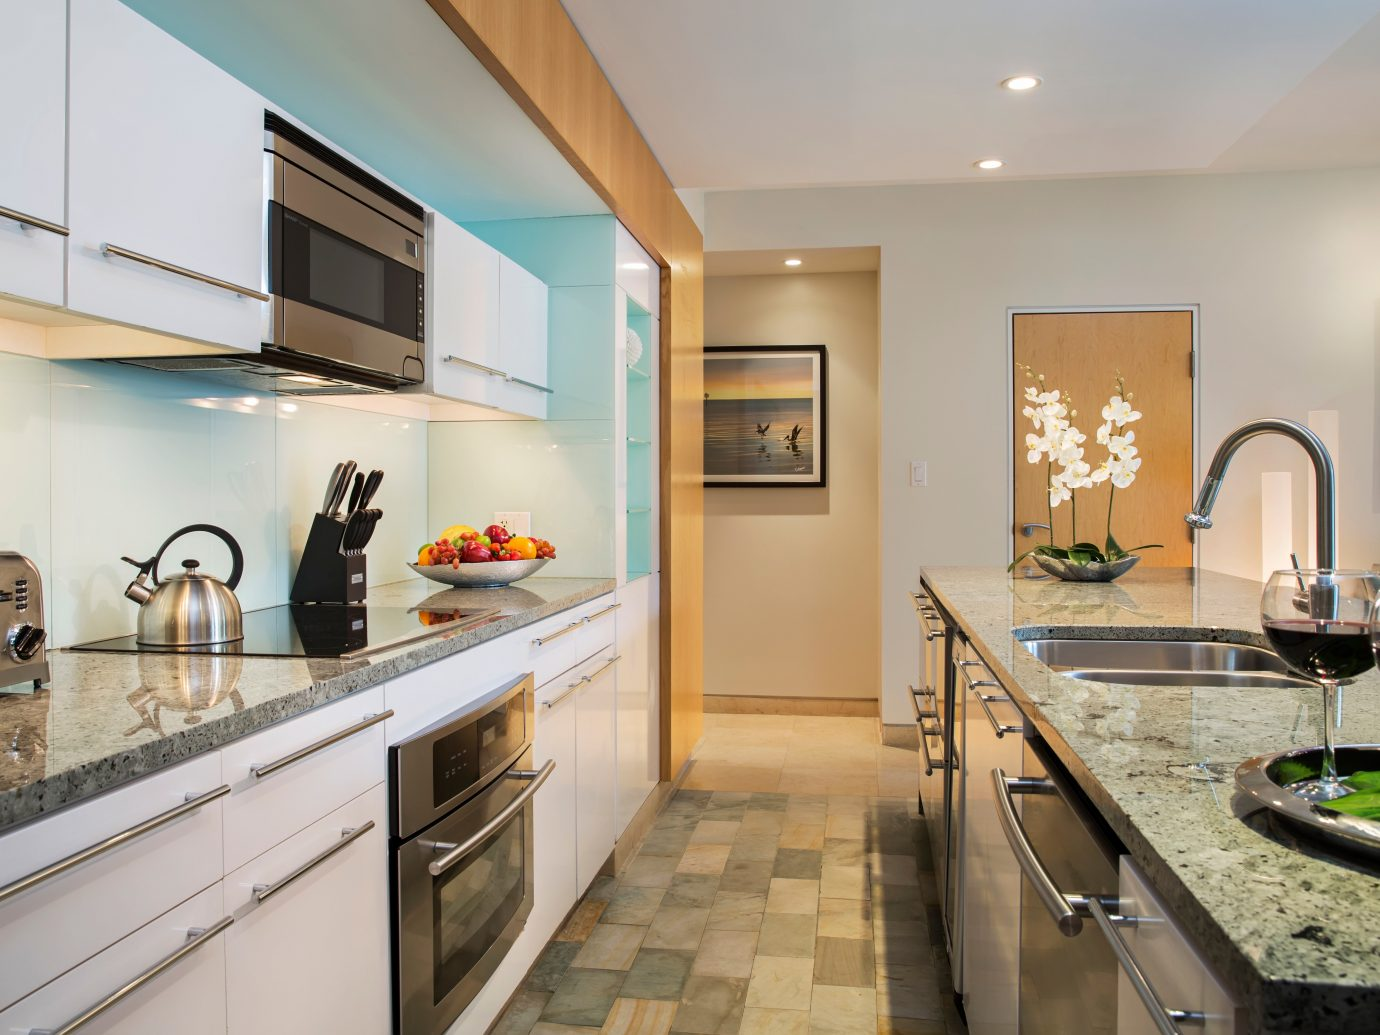 Hotels Kitchen Modern indoor floor room property ceiling estate home real estate interior design counter condominium Design appliance apartment Suite cottage stainless steel Island area